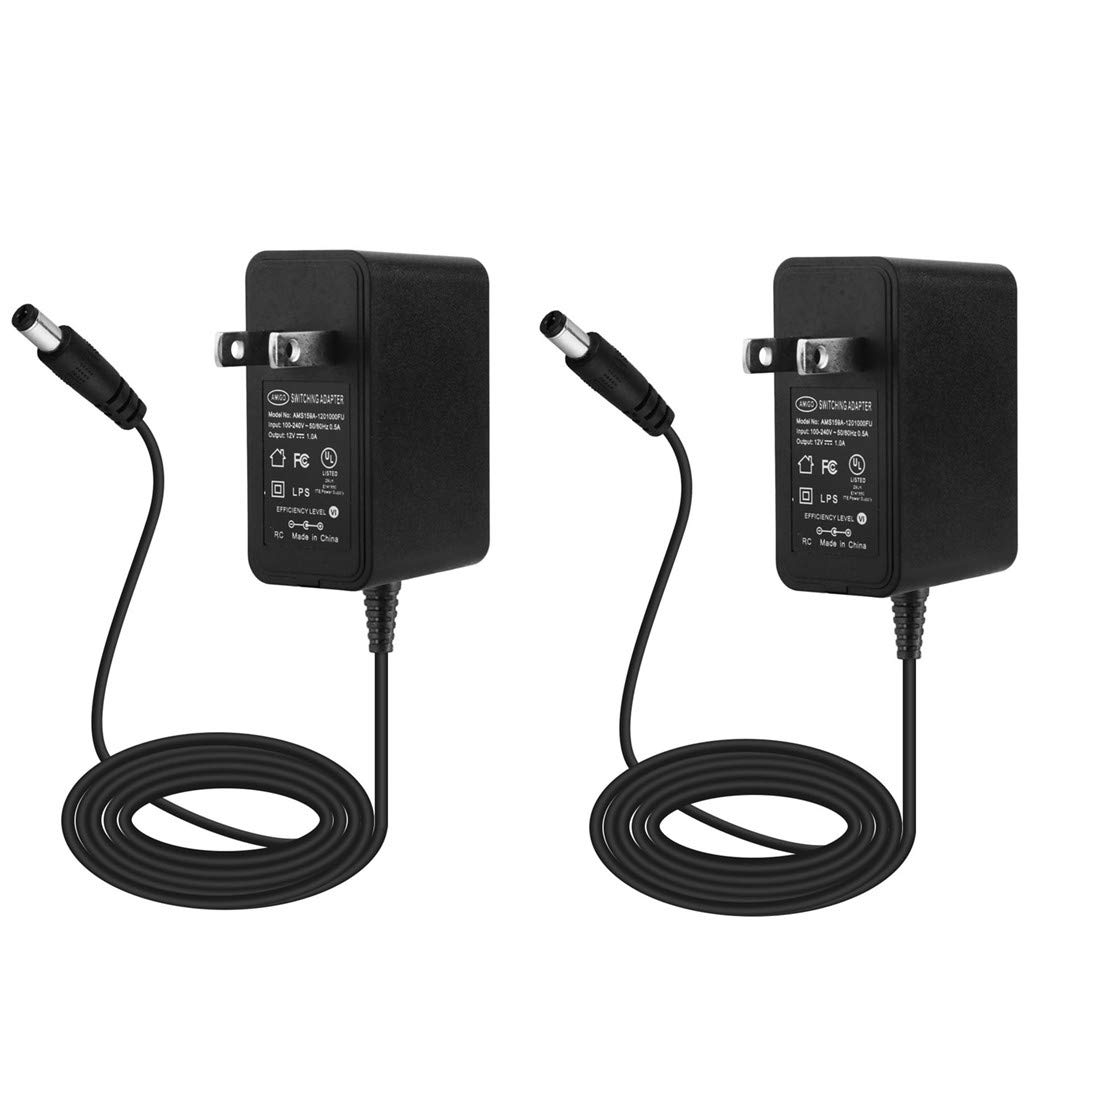 ALSISK 12V 1A Switching Power Supply Adapter - 2 Pack